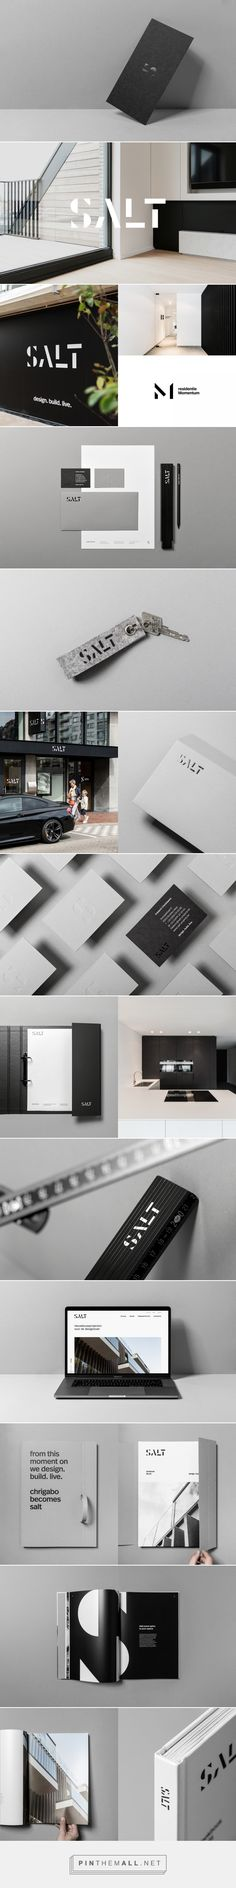 salt real estate - branding on Behance... - a grouped images picture - Pin Them All